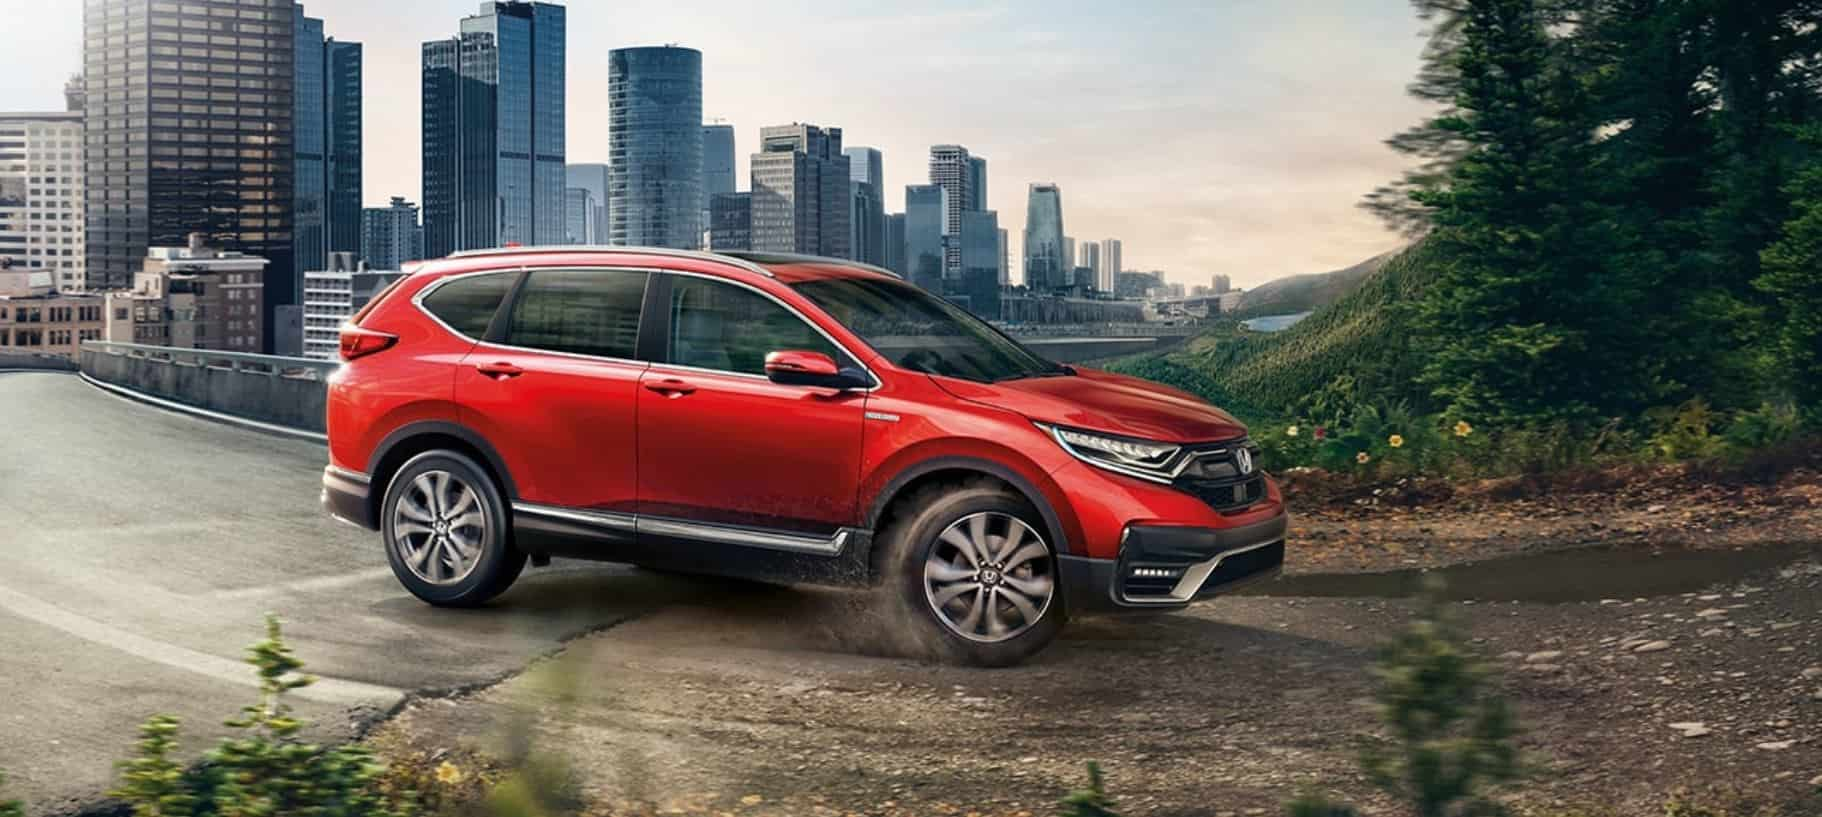 All New 2020 Honda CR-V Hybrid is coming to Iowa